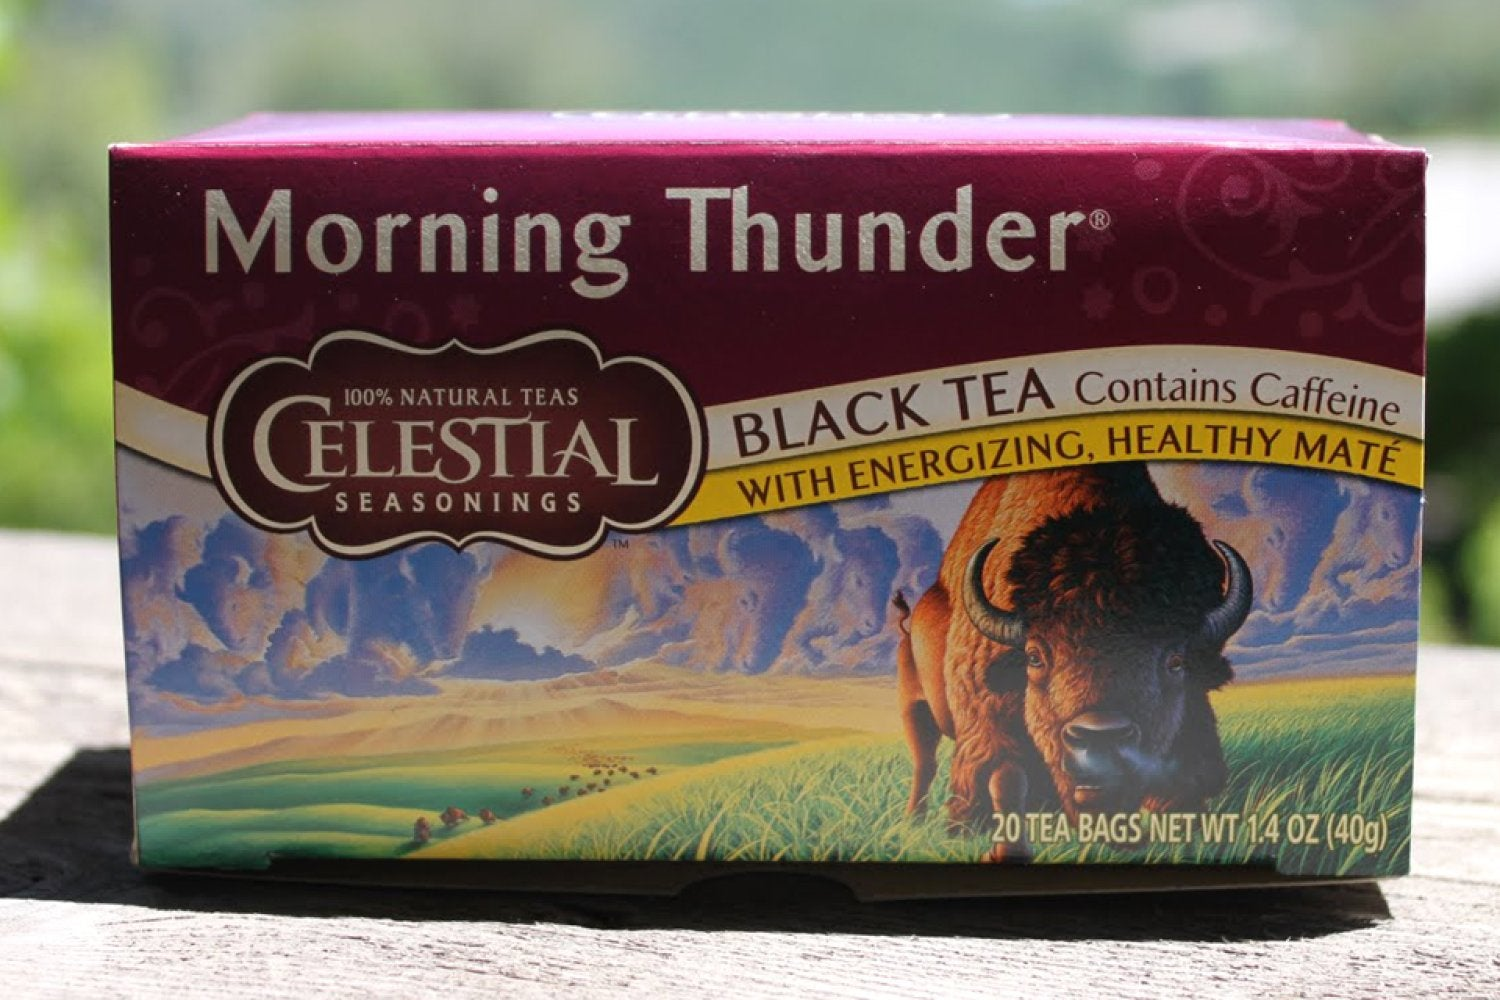 A photo showing a box of Morning Thunder Tea, to get your day started!